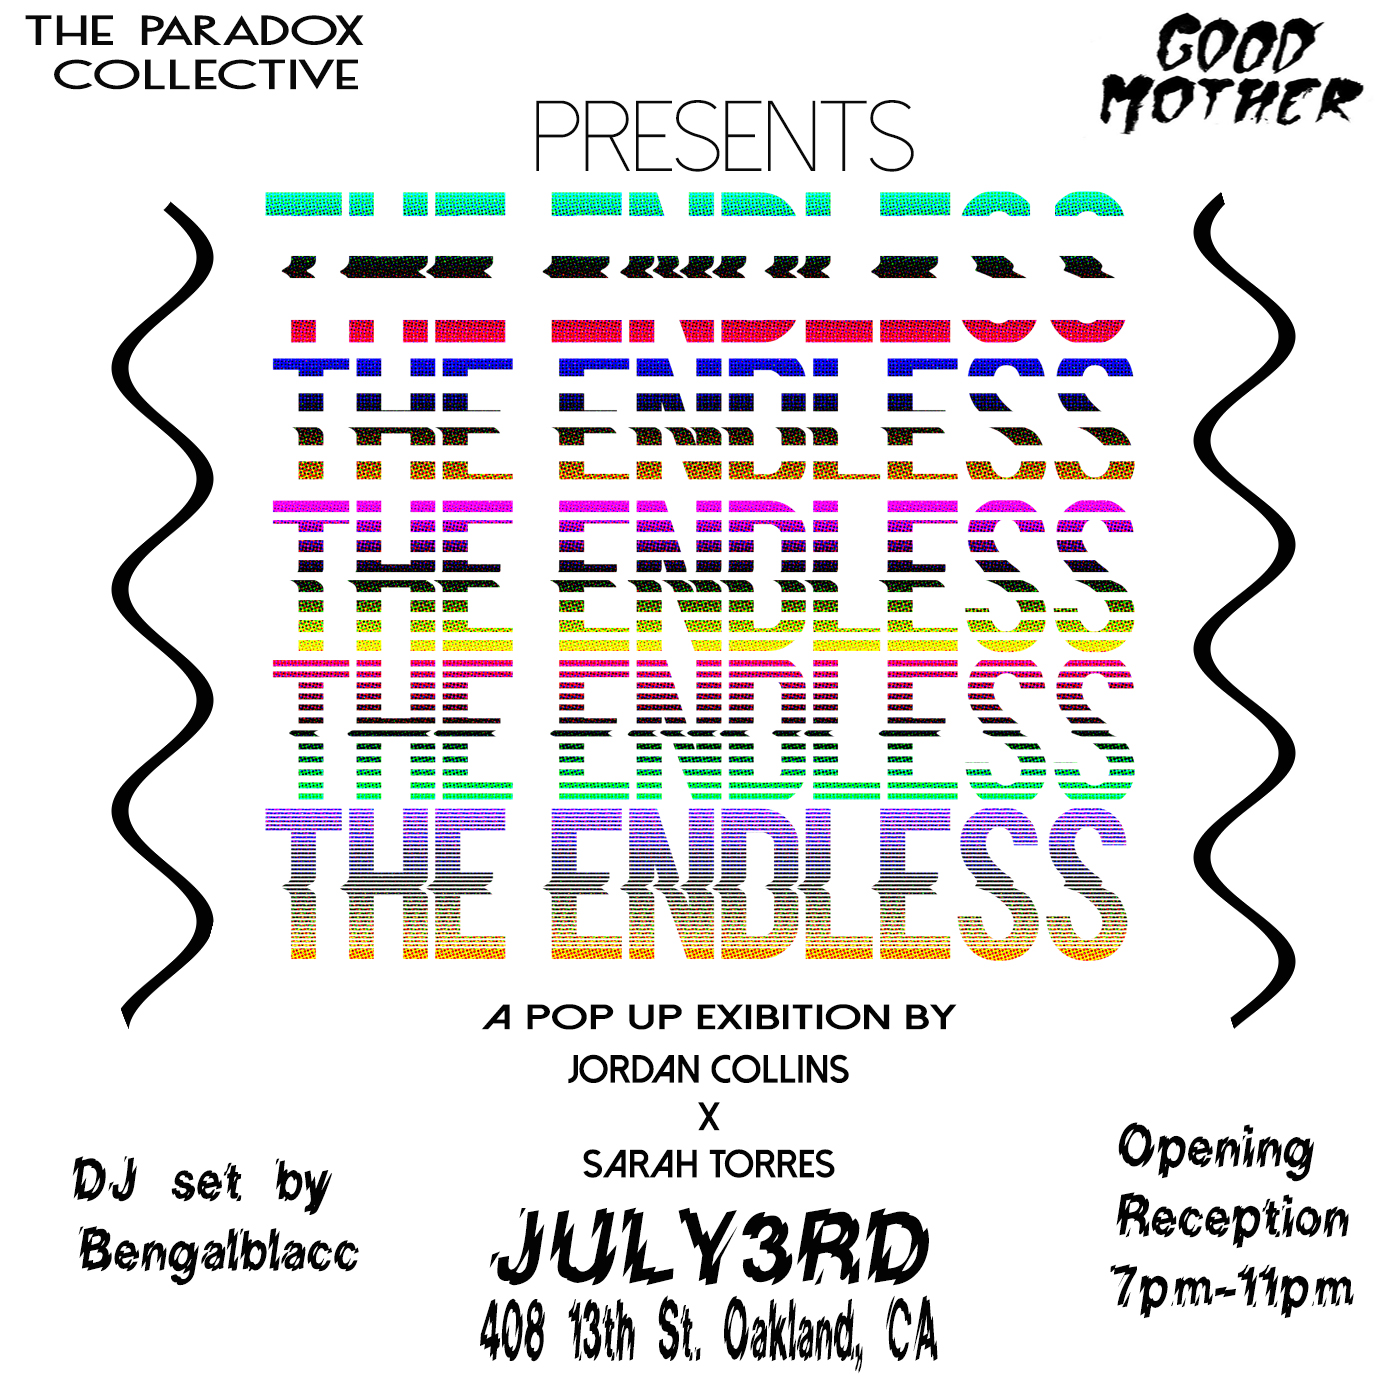 THE ENDLESS FINAL POSTER SHOW